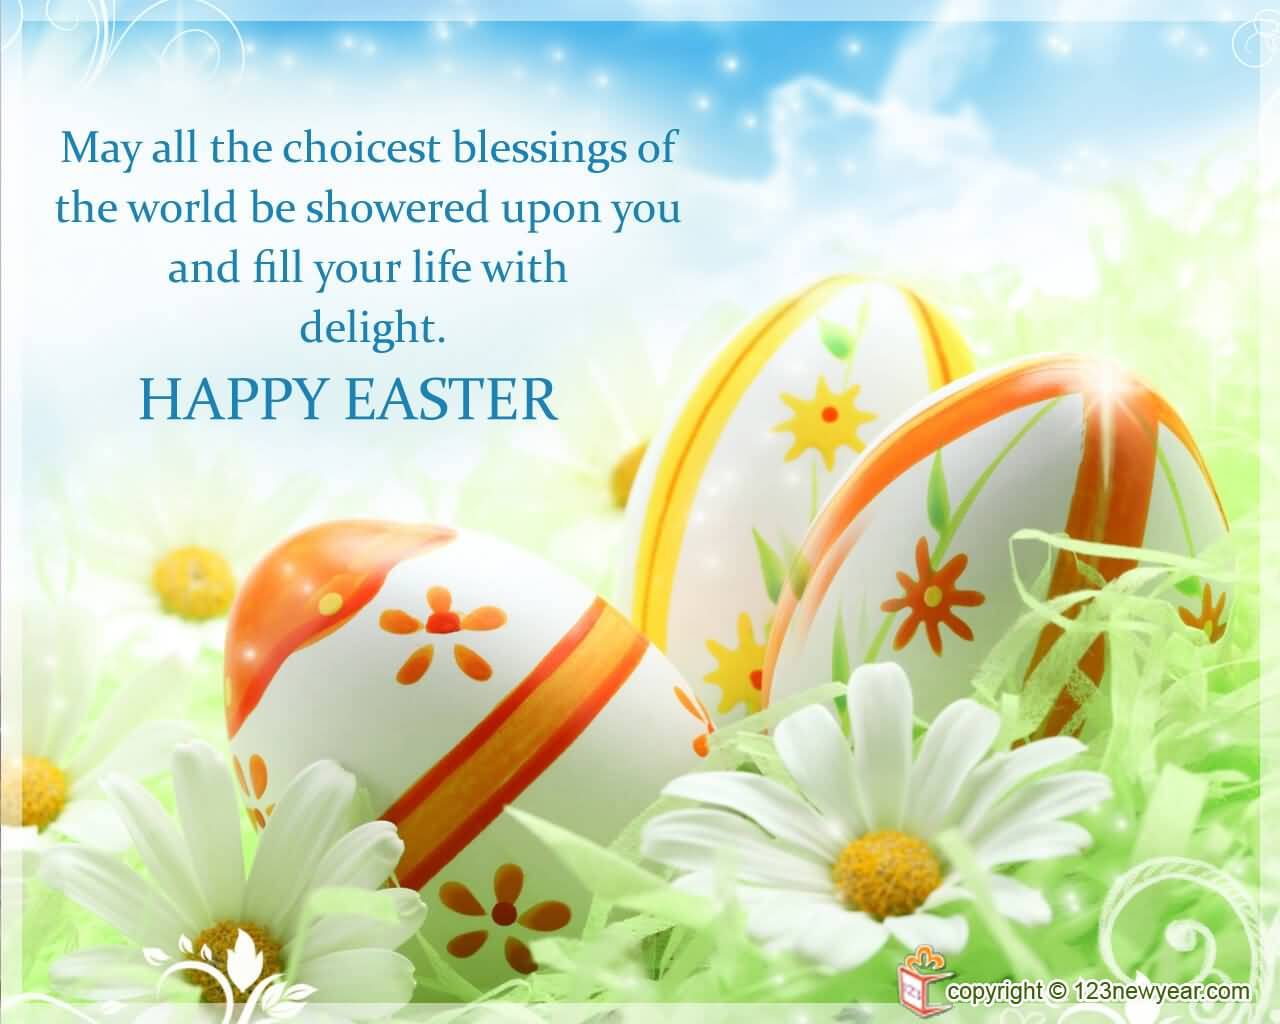 May The Choicest Blessings Of The World Be Showered Upon You And Fill Your Life With Delight. Happy Easter